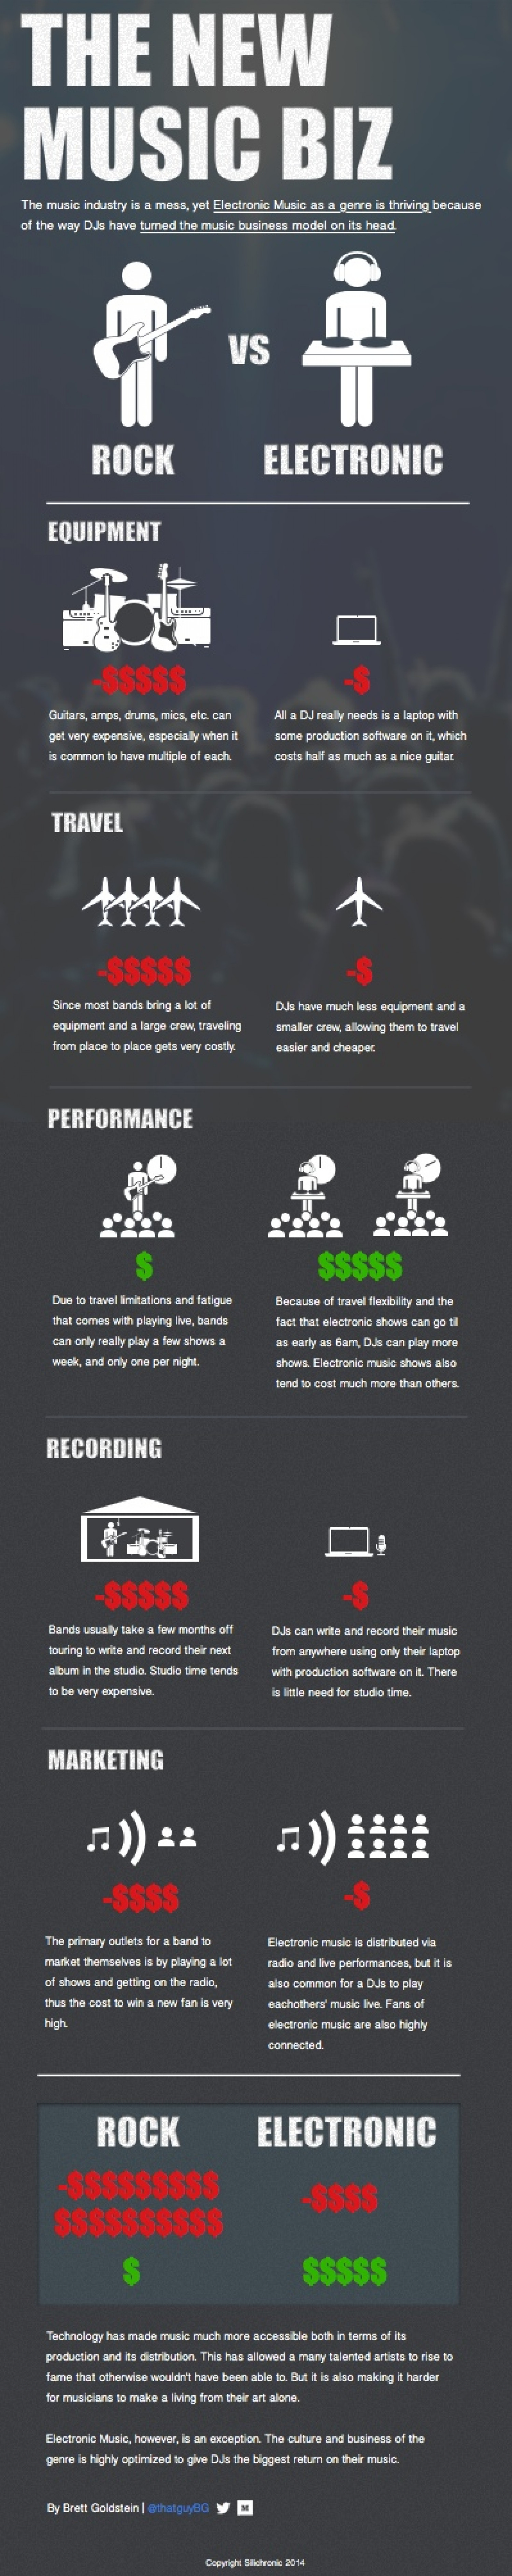 The New Music Biz Infographic